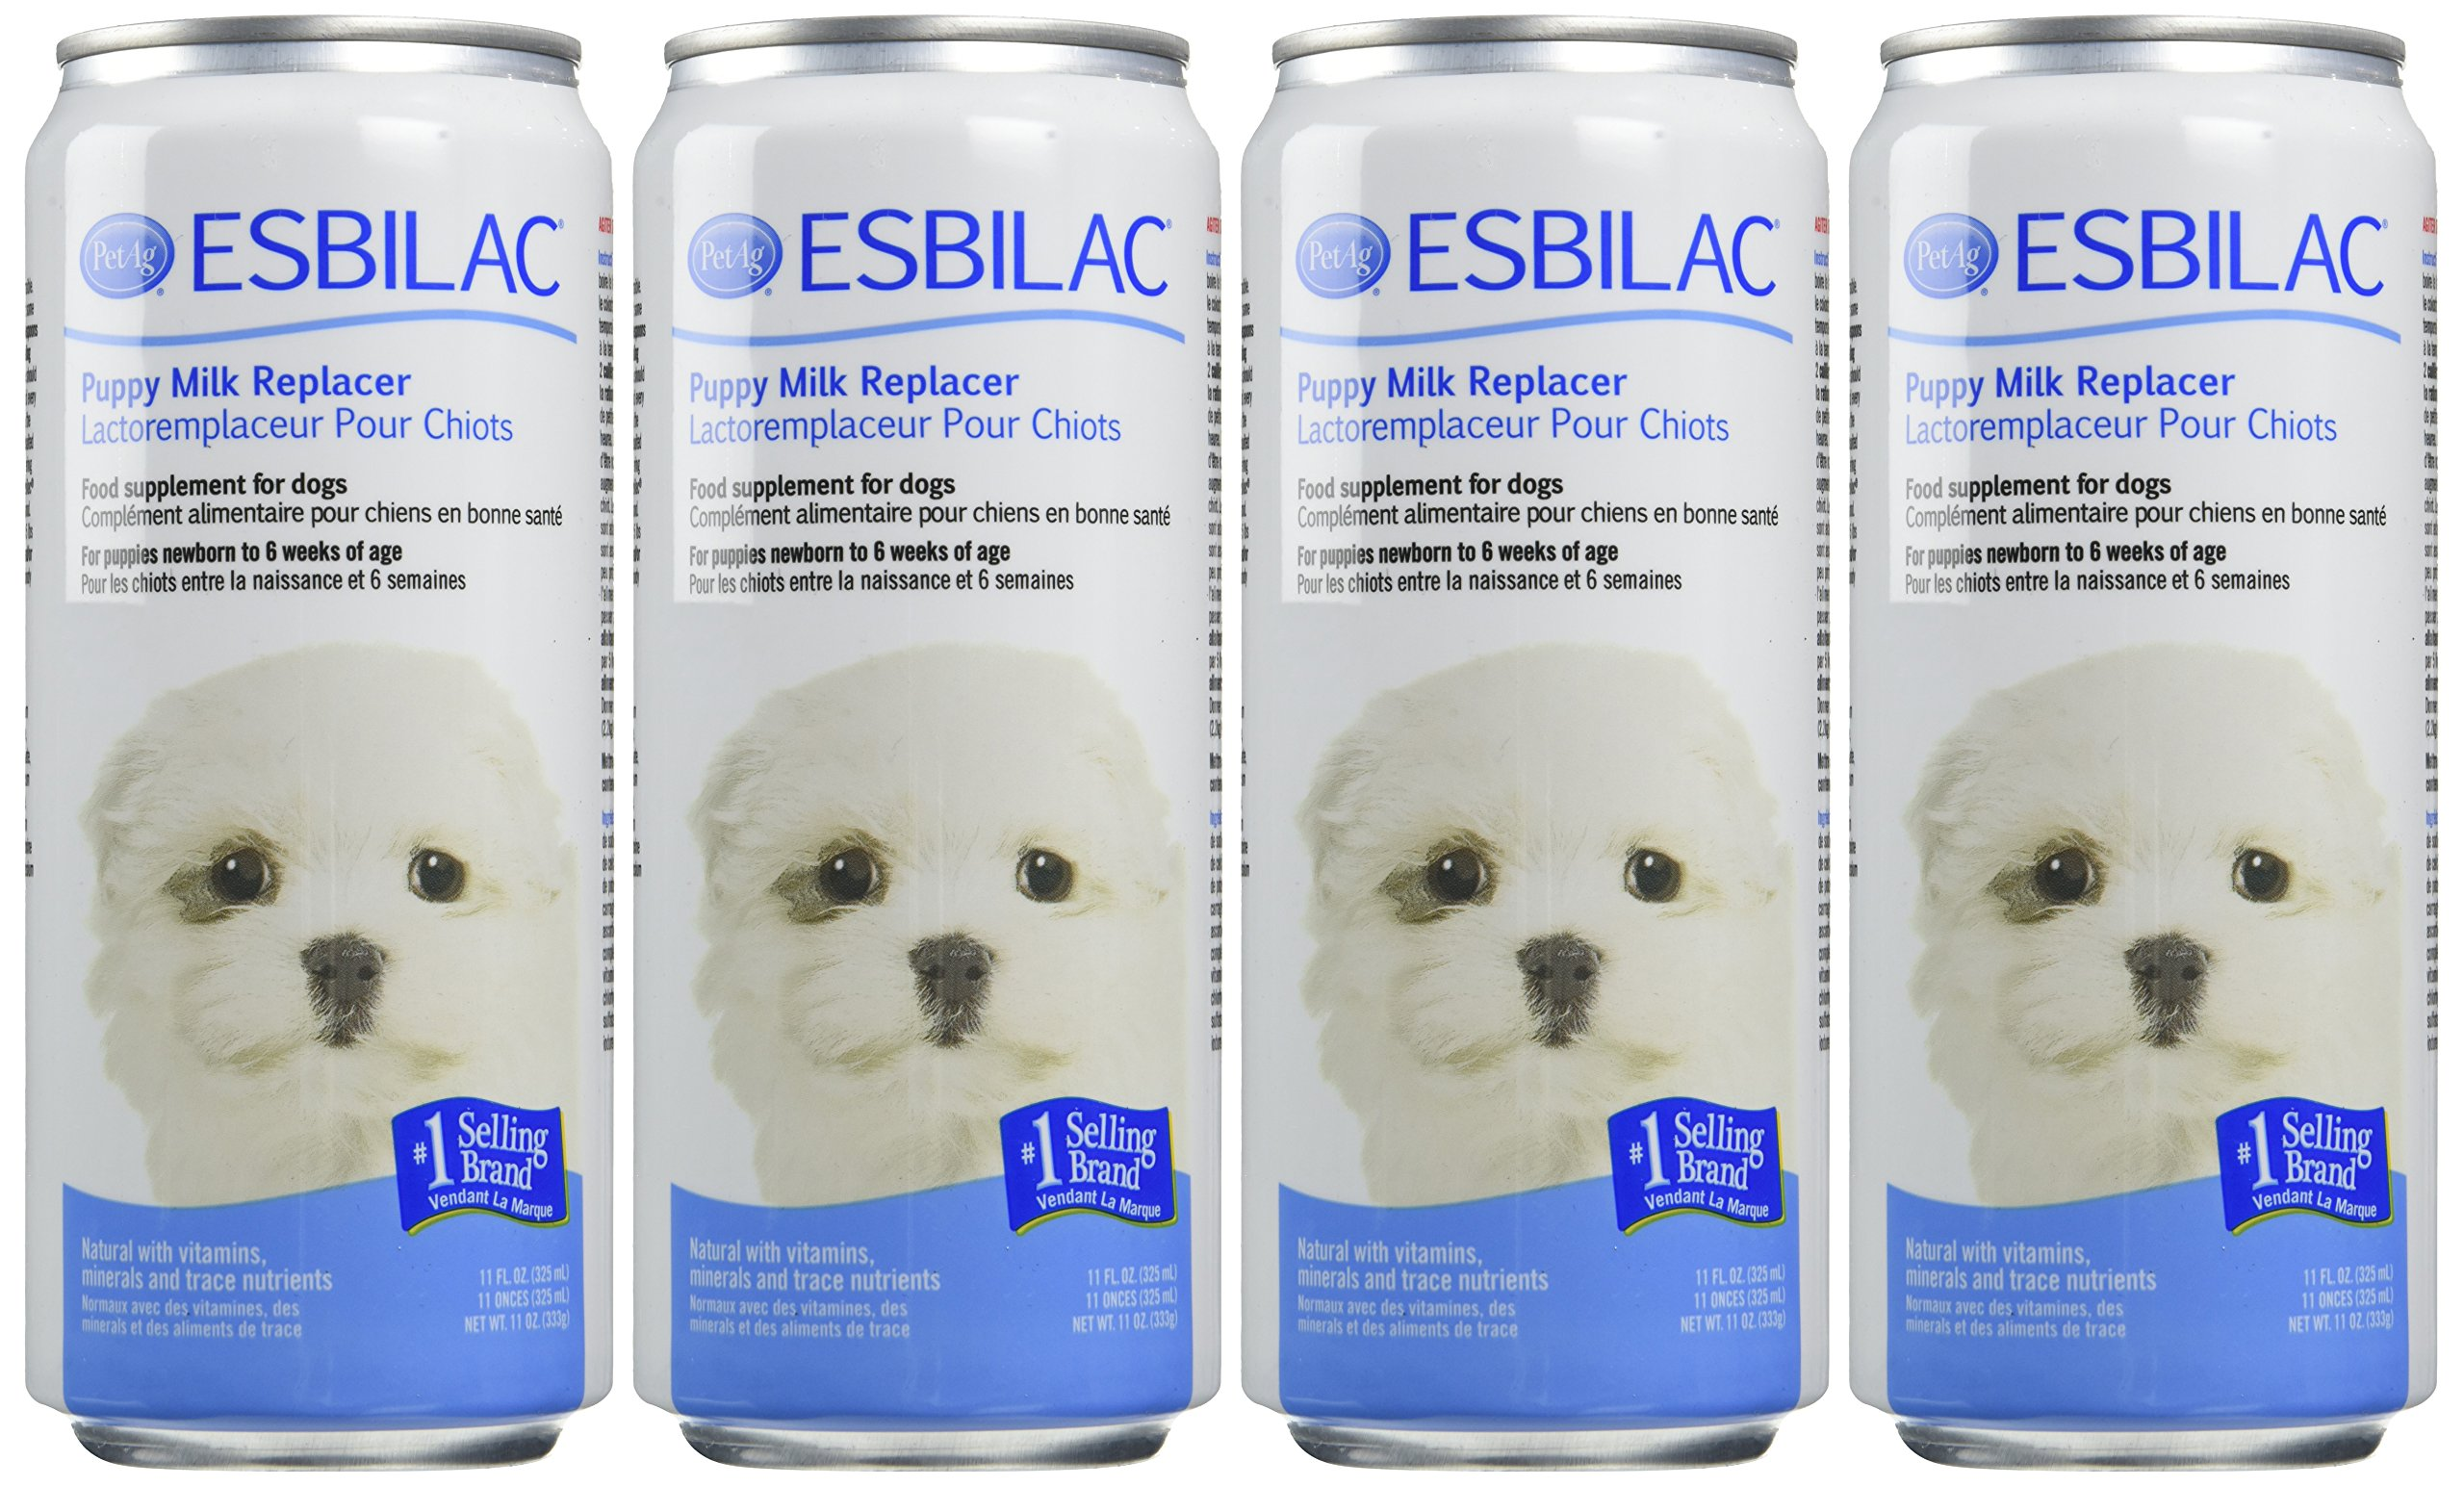 (4 Pack) Esbilac Liquid for Puppies, Milk Replacer - 11 Ounces each